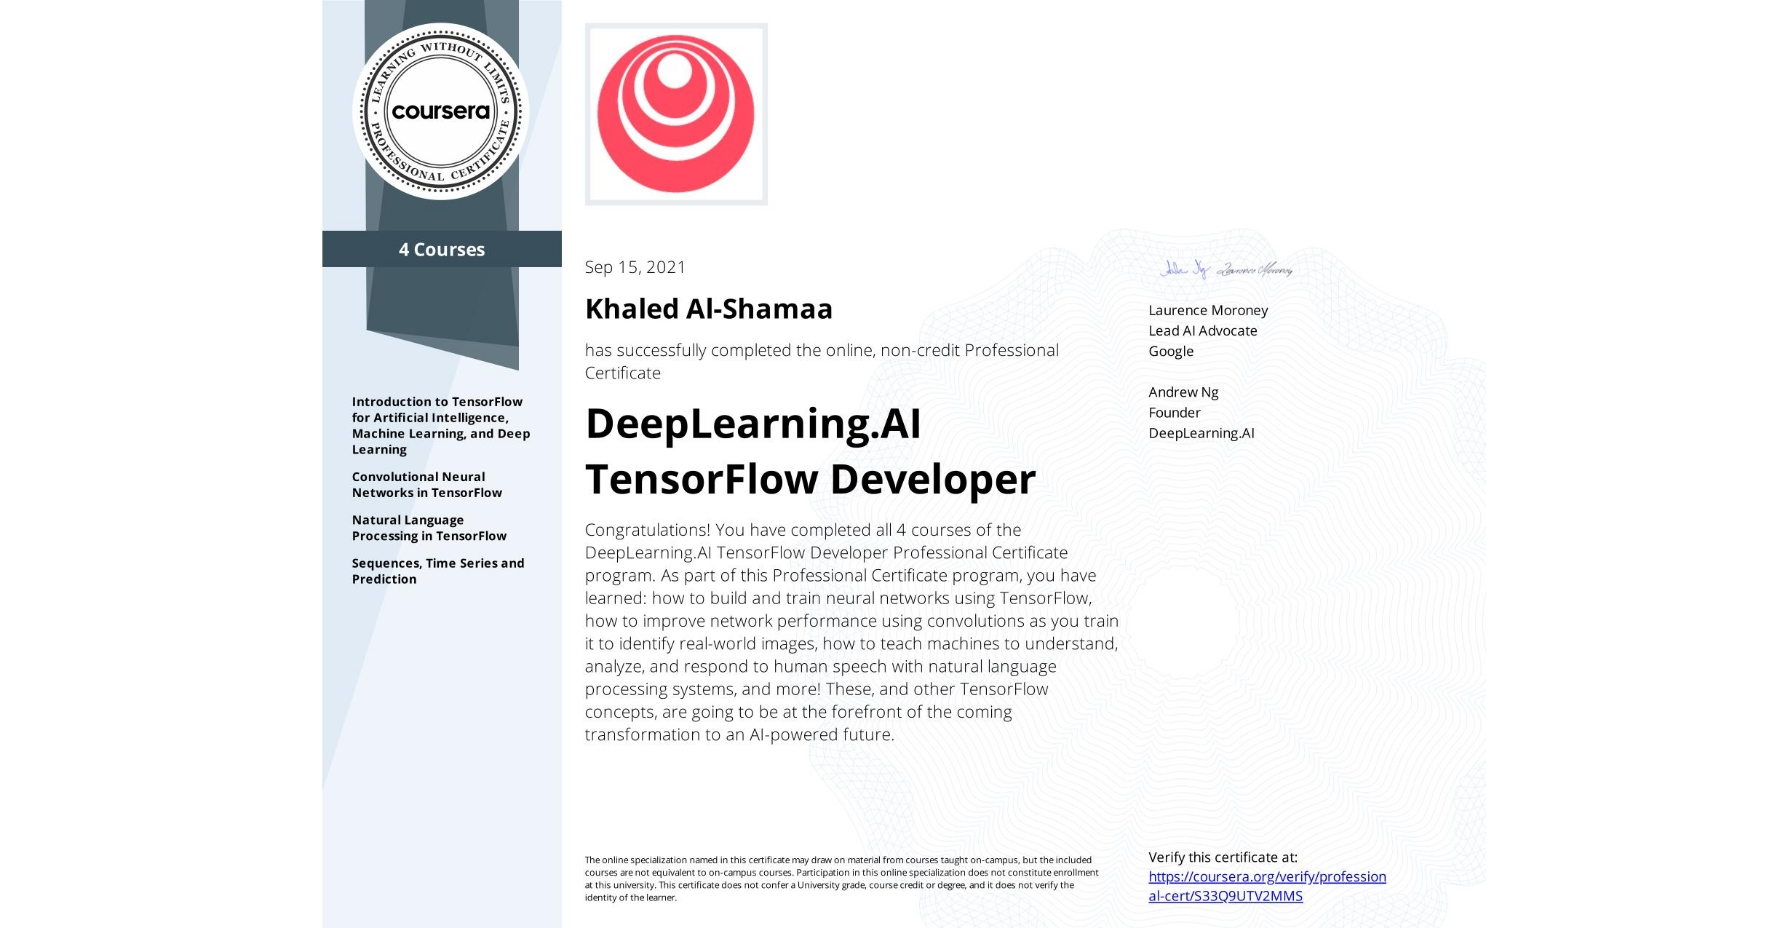 View certificate for Khaled Al-Shamaa, DeepLearning.AI TensorFlow Developer, offered through Coursera. Congratulations! You have completed all 4 courses of the DeepLearning.AI TensorFlow Developer Professional Certificate program.   As part of this Professional Certificate program, you have learned: how to build and train neural networks using TensorFlow, how to improve network performance using convolutions as you train it to identify real-world images, how to teach machines to understand, analyze, and respond to human speech with natural language processing systems, and more!  These, and other TensorFlow concepts, are going to be at the forefront of the coming transformation to an AI-powered future.